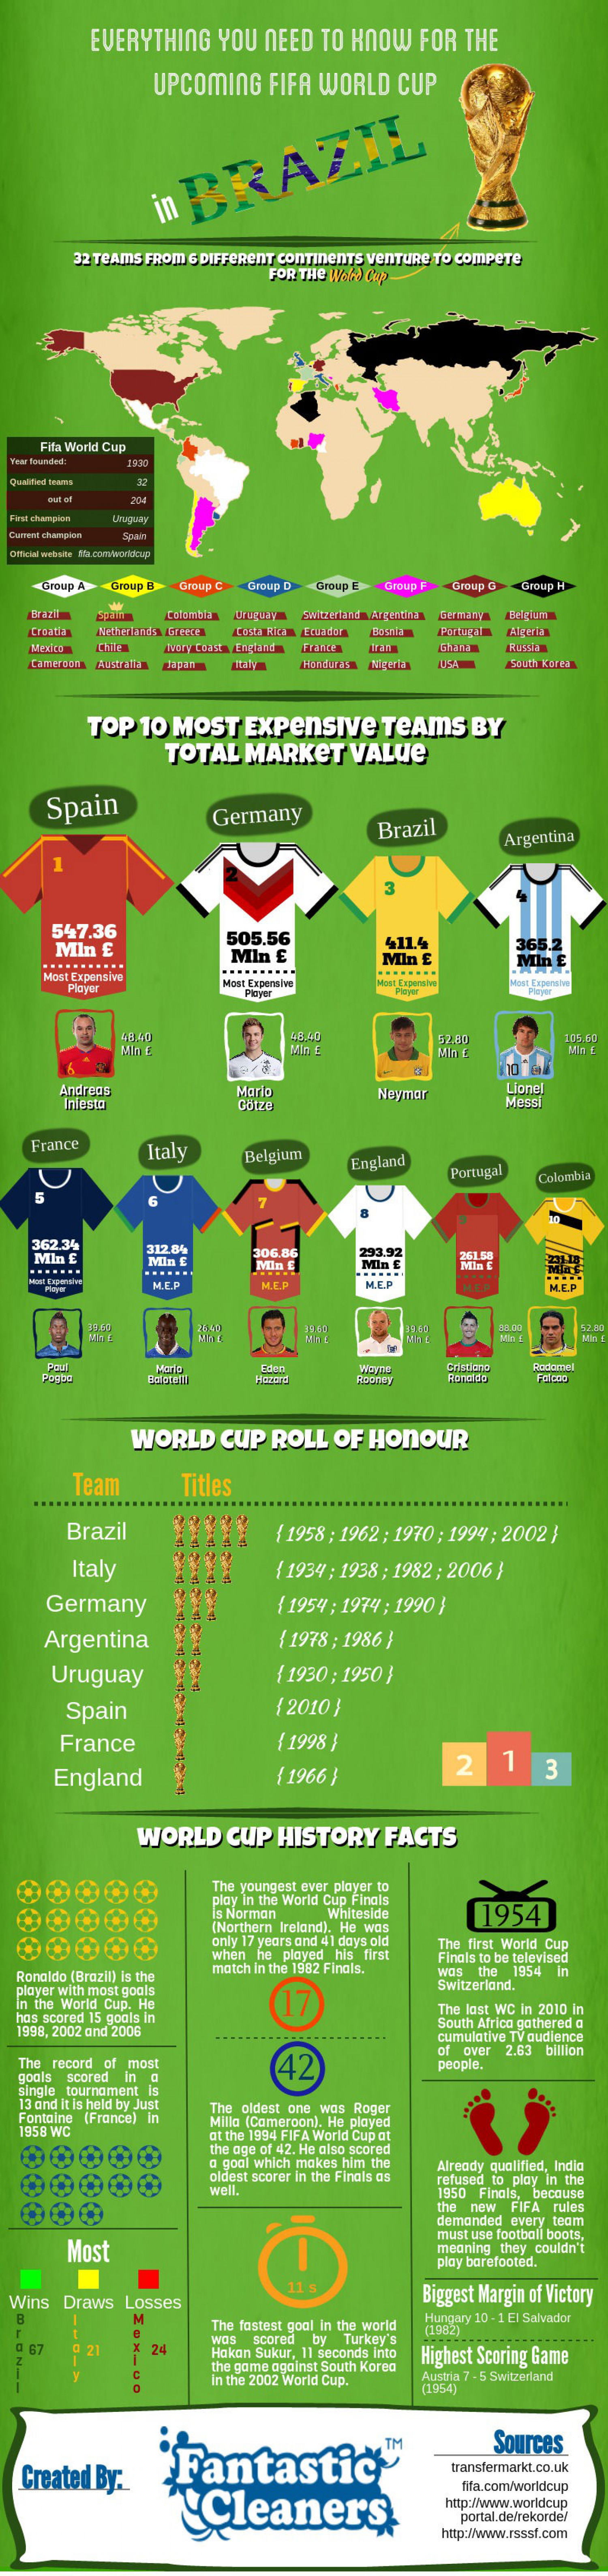 Everything You Need to Know for the Upcoming FIFA World Cup in Brazil Infographic